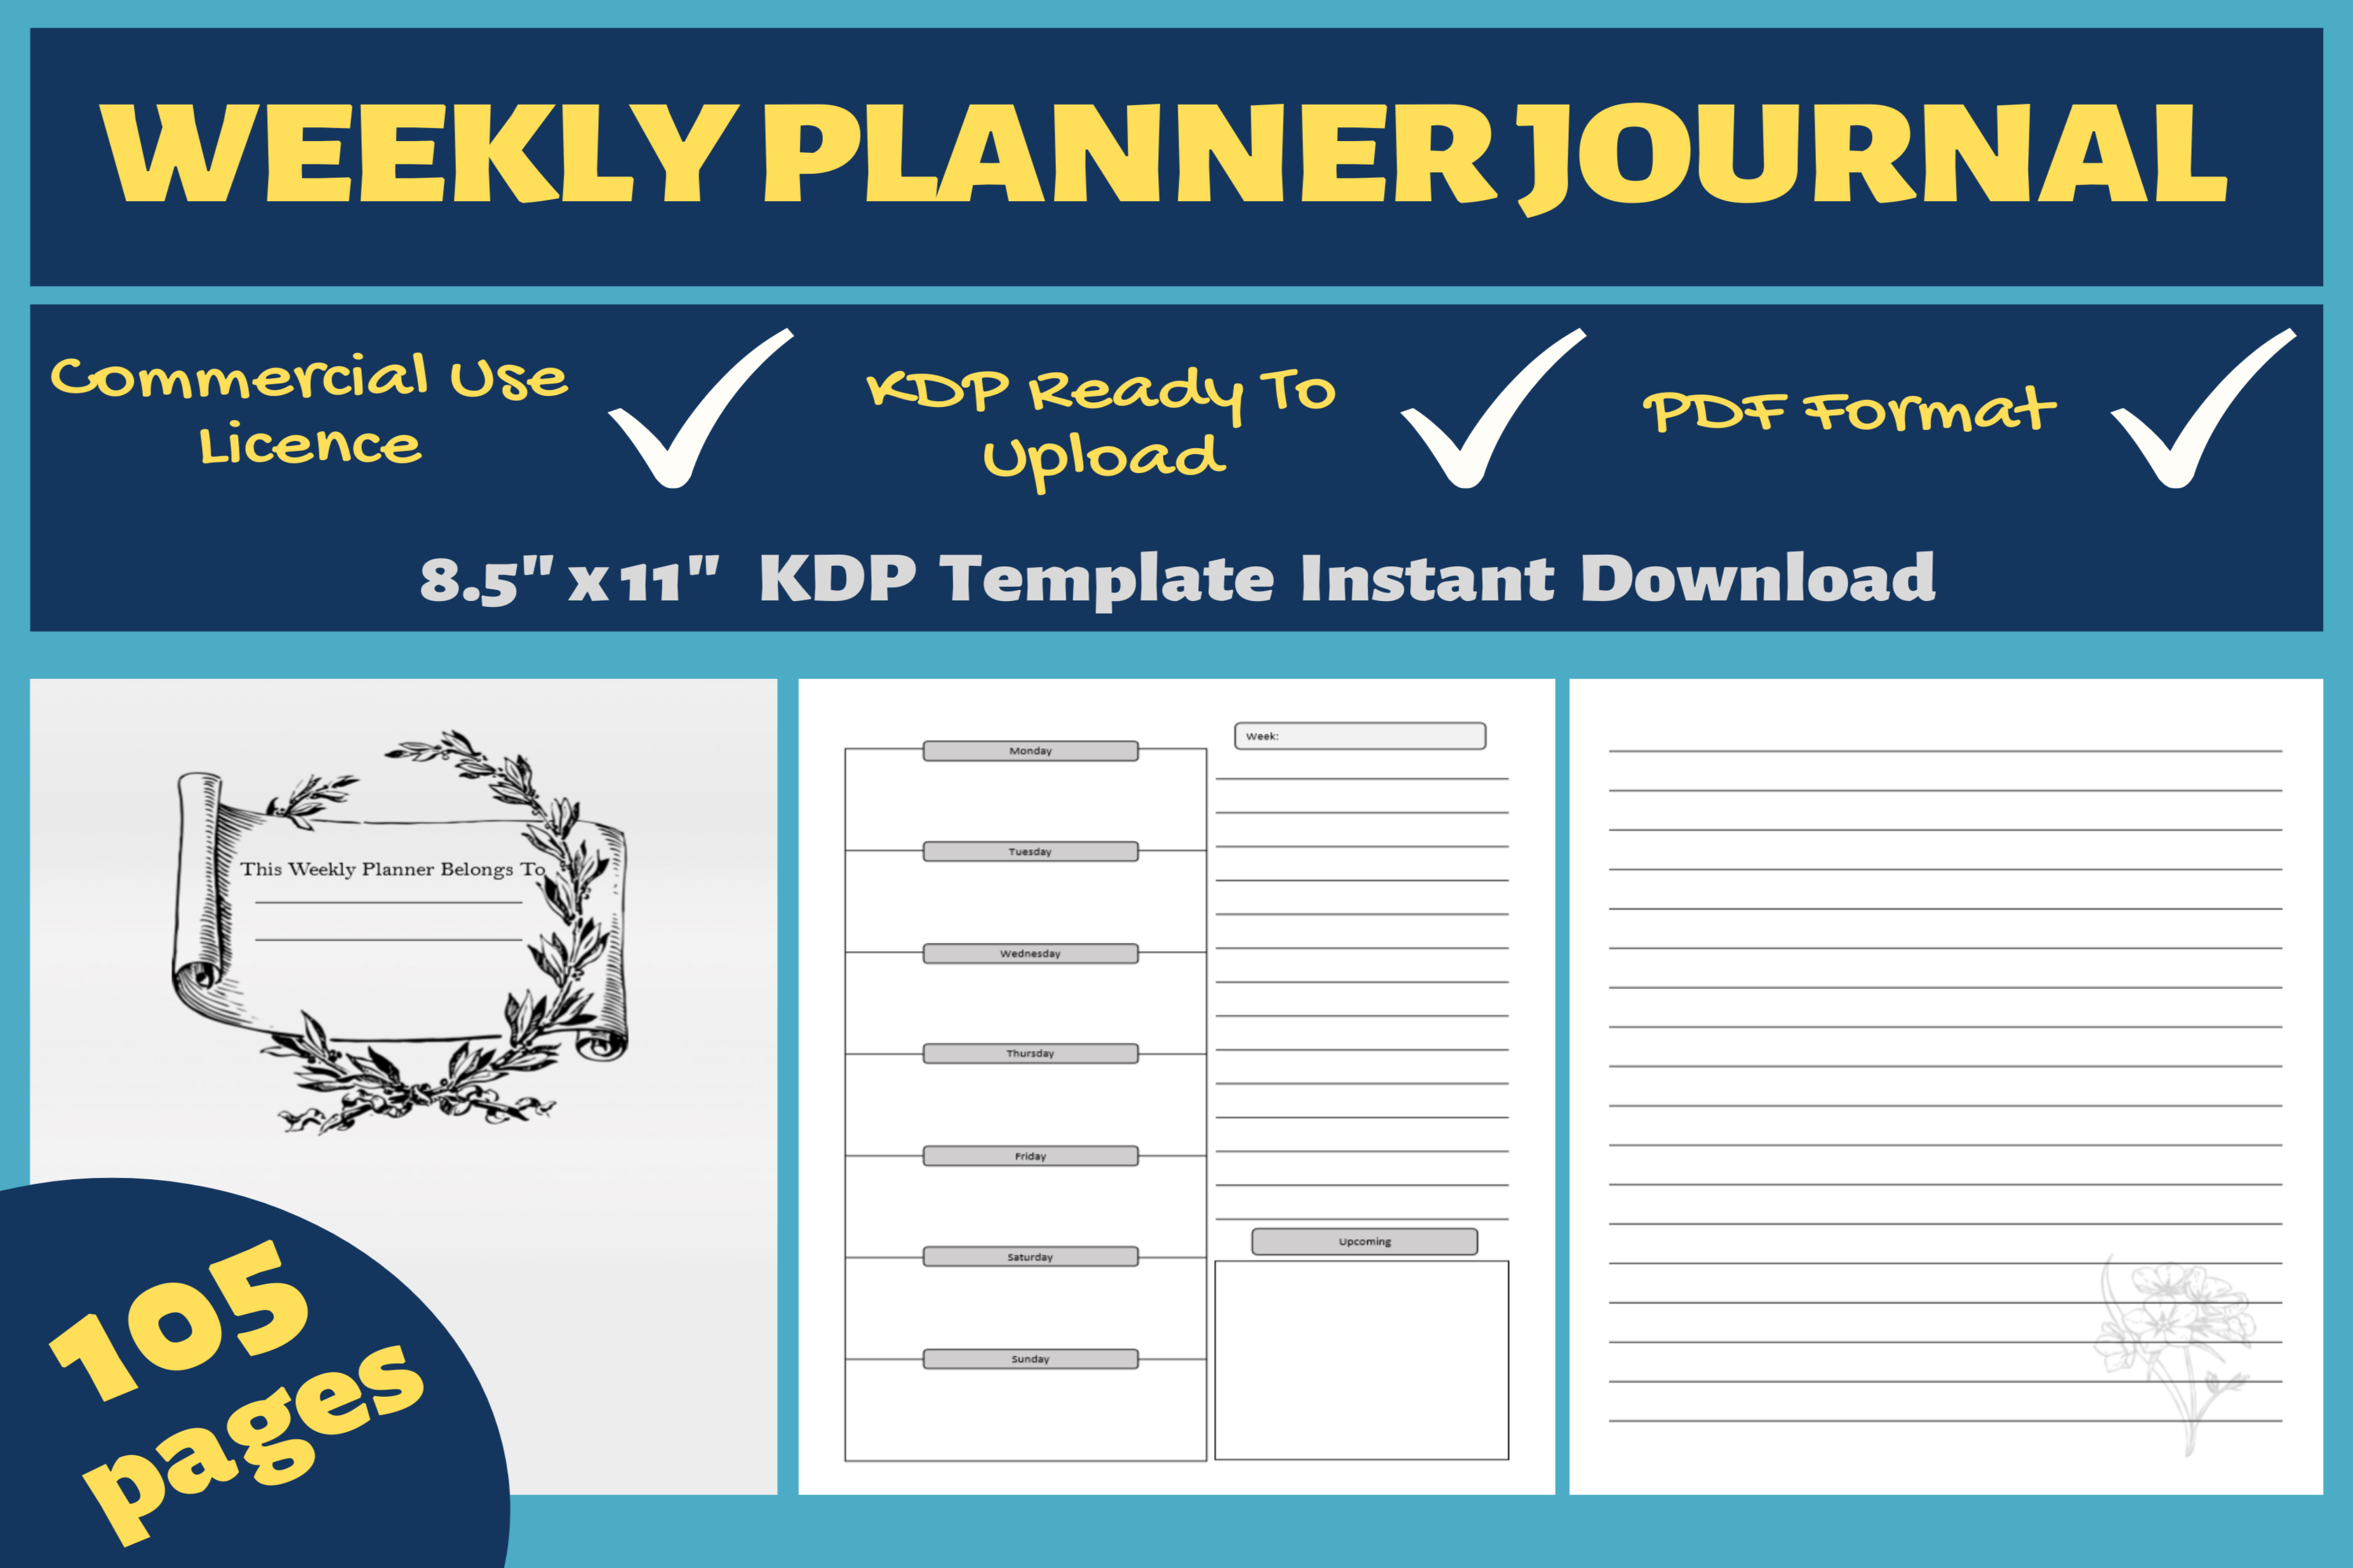 Download Free Weekly Planner Journal Kdp Interior Graphic By Mastery for Cricut Explore, Silhouette and other cutting machines.